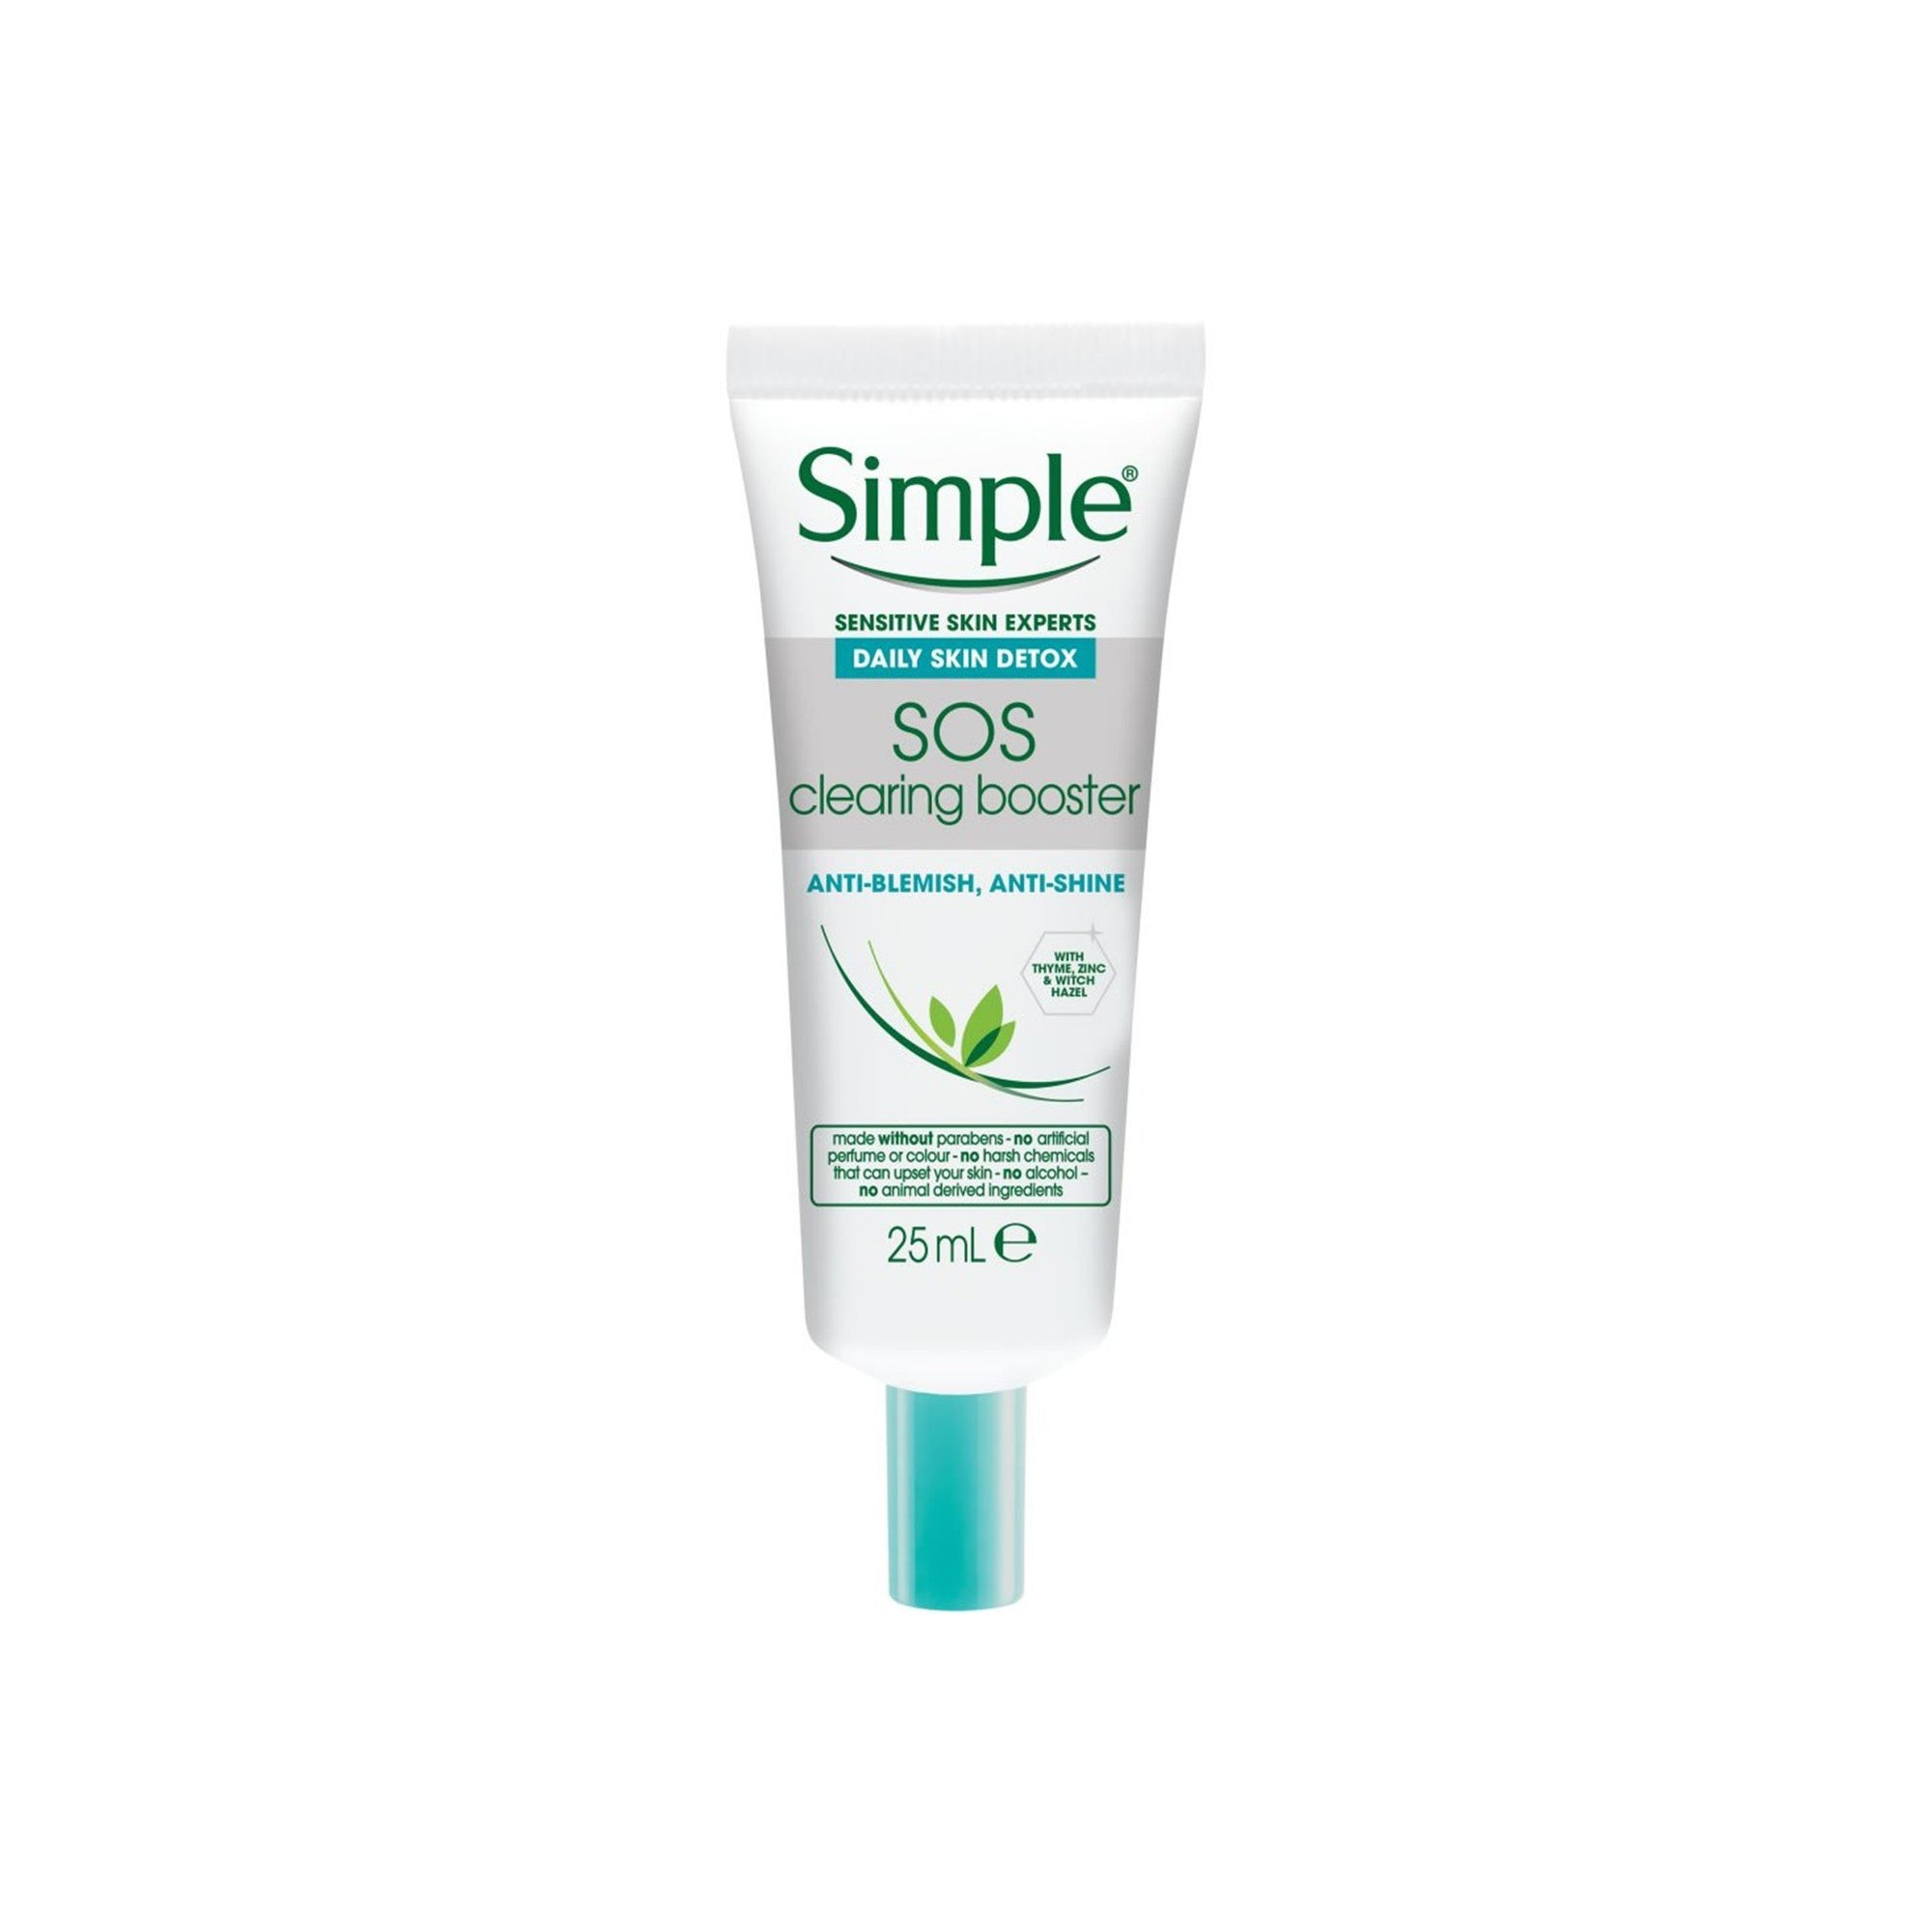 Simple SOS Clearing Booster 25ml